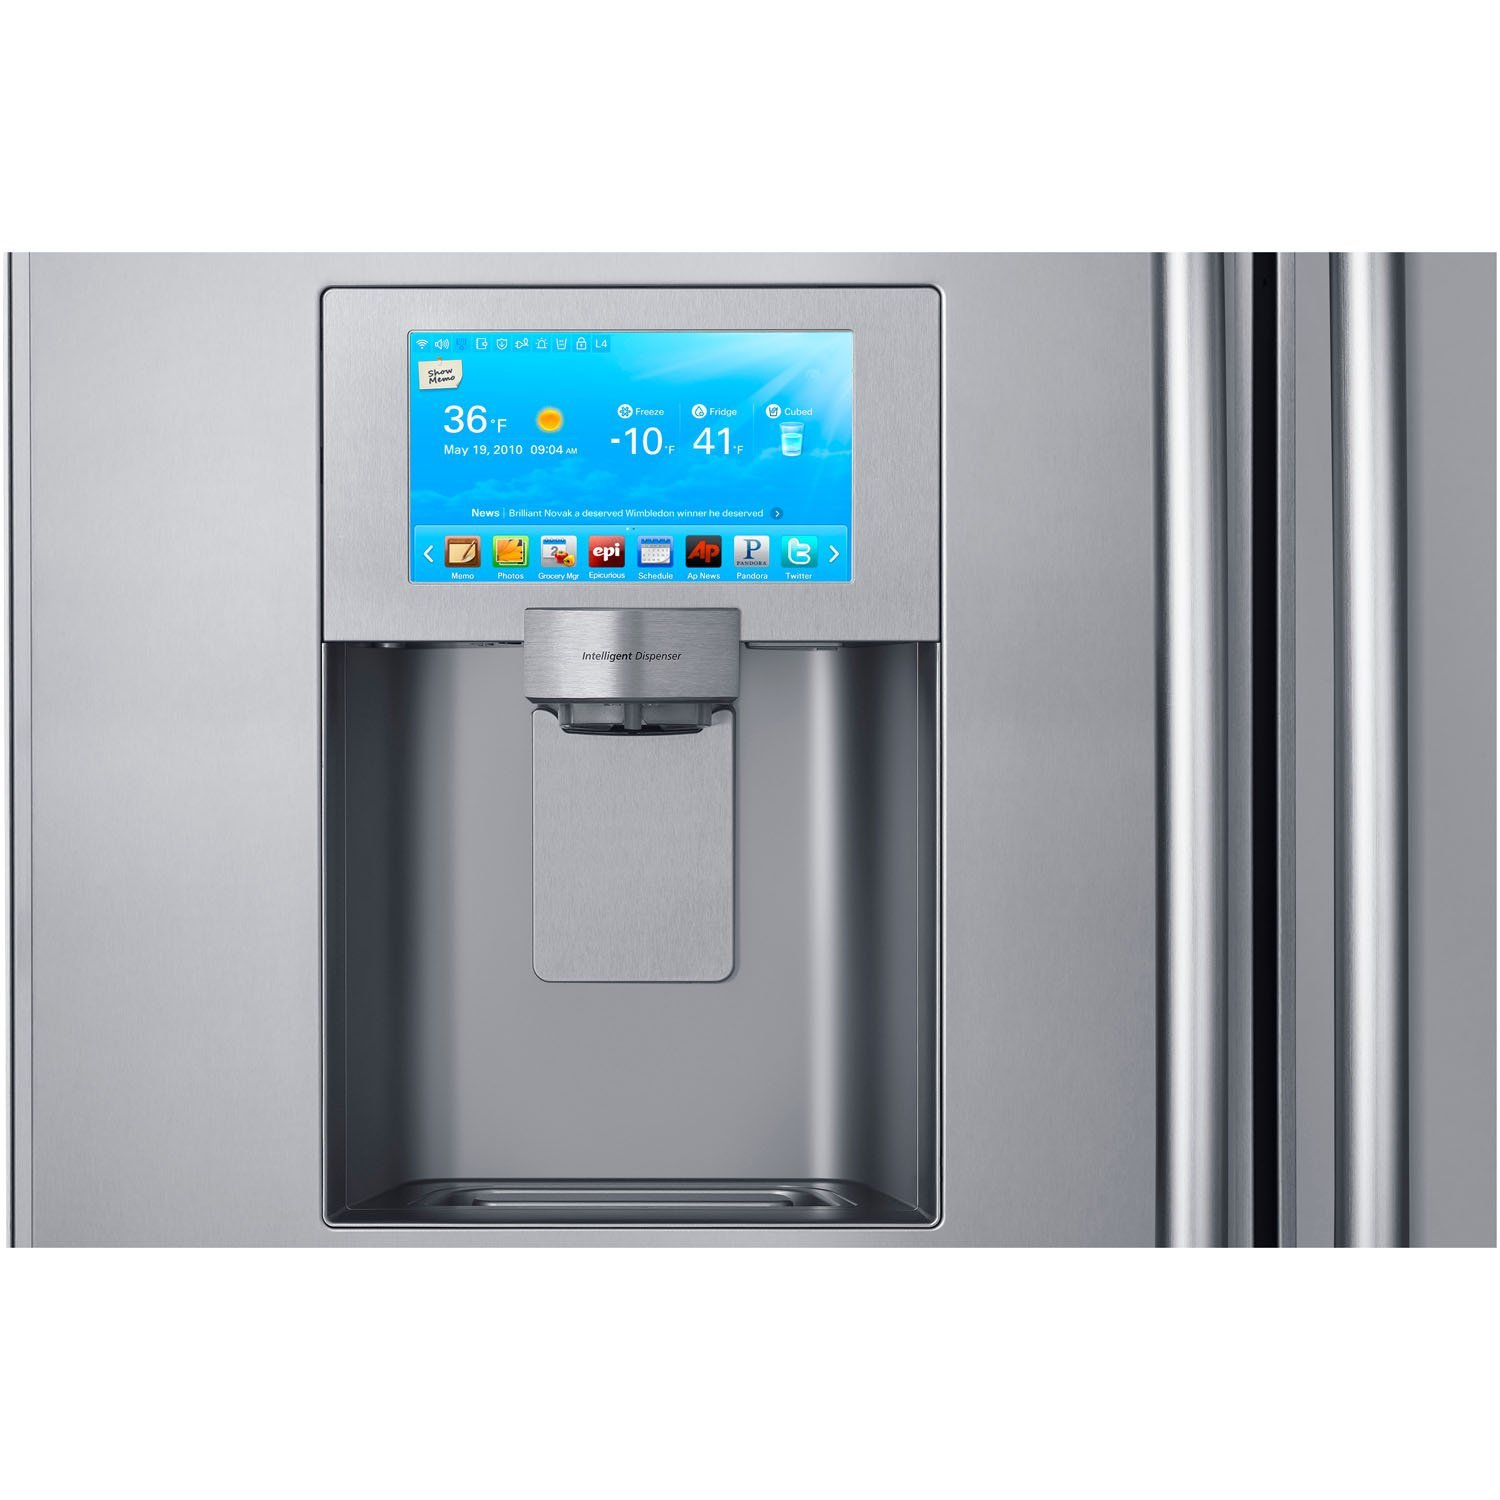 refrigerator 48 inches wide. amazon.com: samsung rs27fdbtnsr built-in side by refrigerator, 48-inch, stainless steel: appliances refrigerator 48 inches wide 8